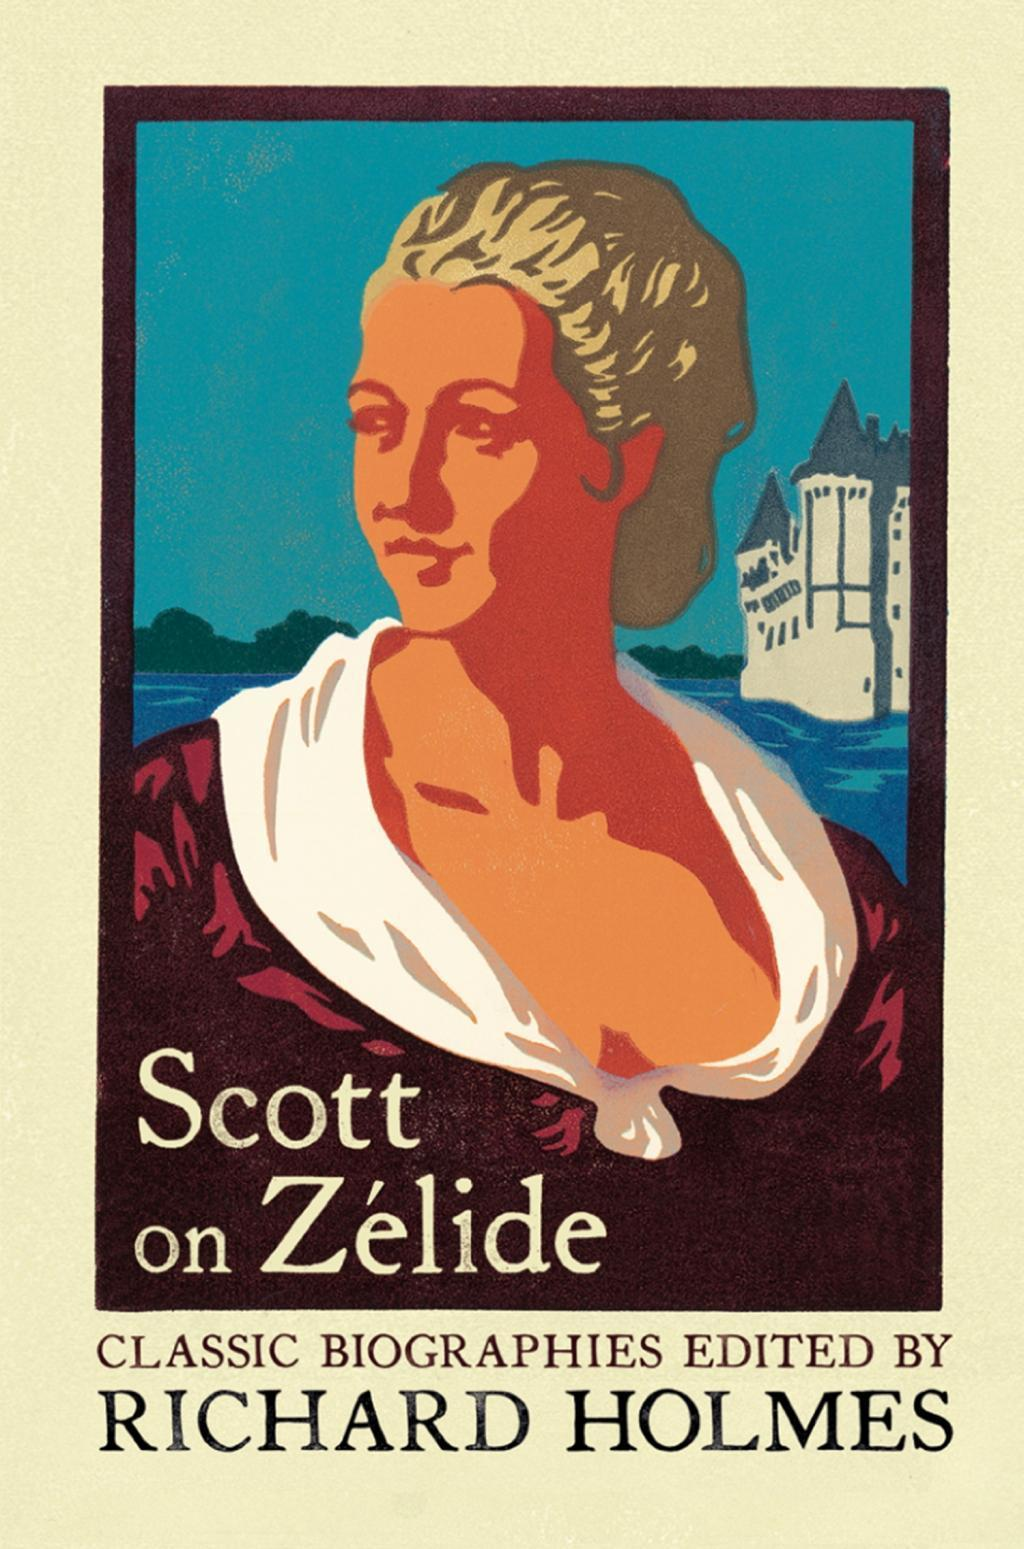 Scott on Zélide: Portrait of Zélide by Geoffrey Scott